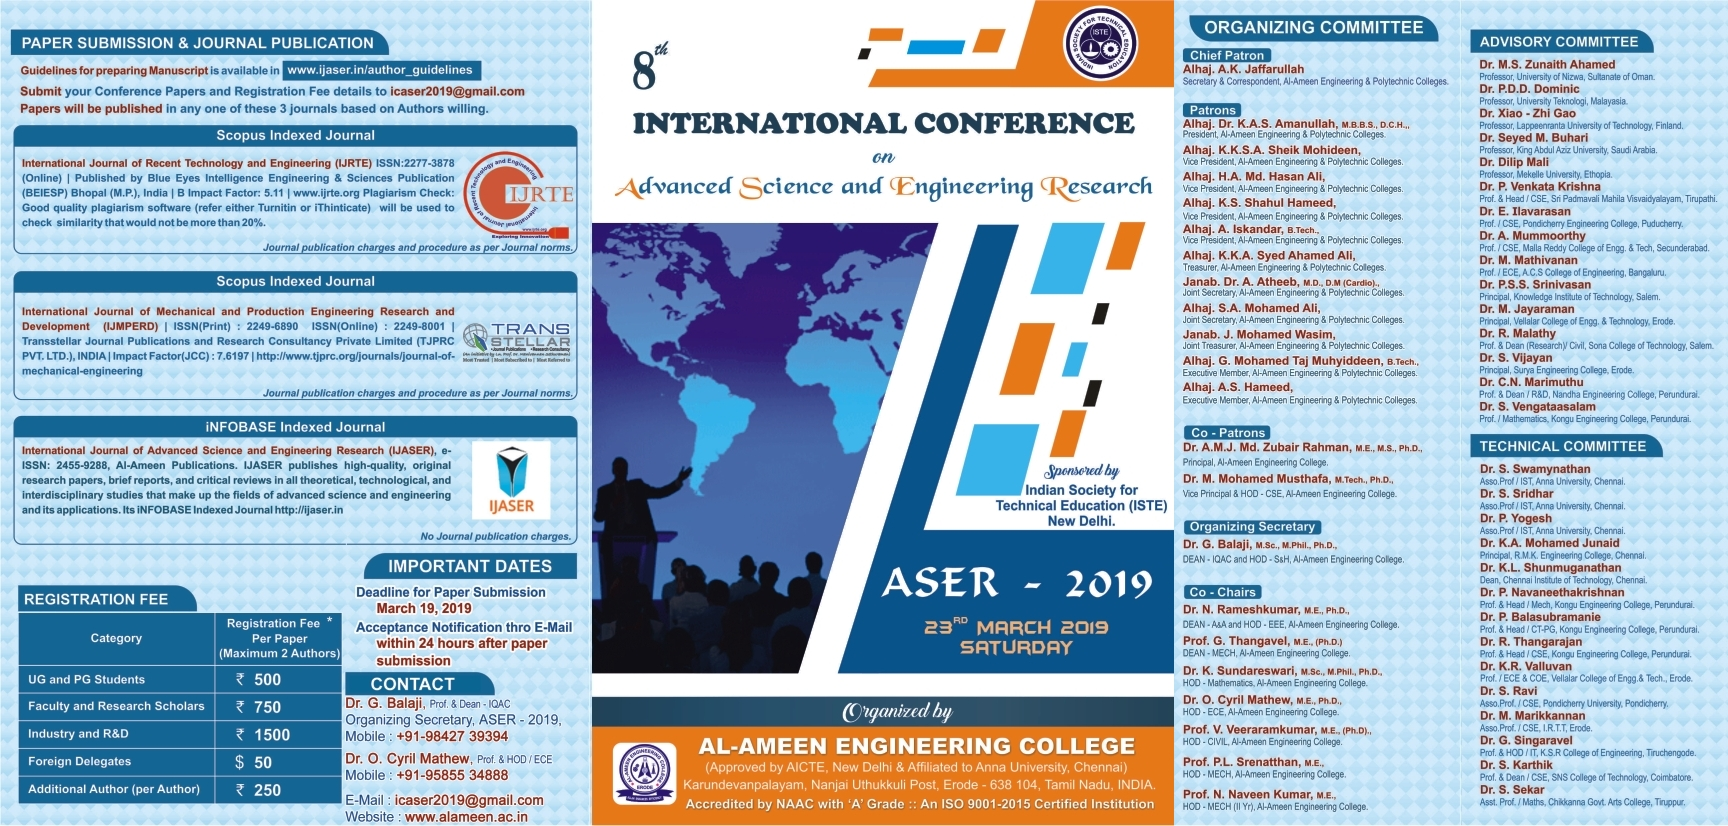 8th INTERNATIONAL CONFERENCE(ASER-2019)